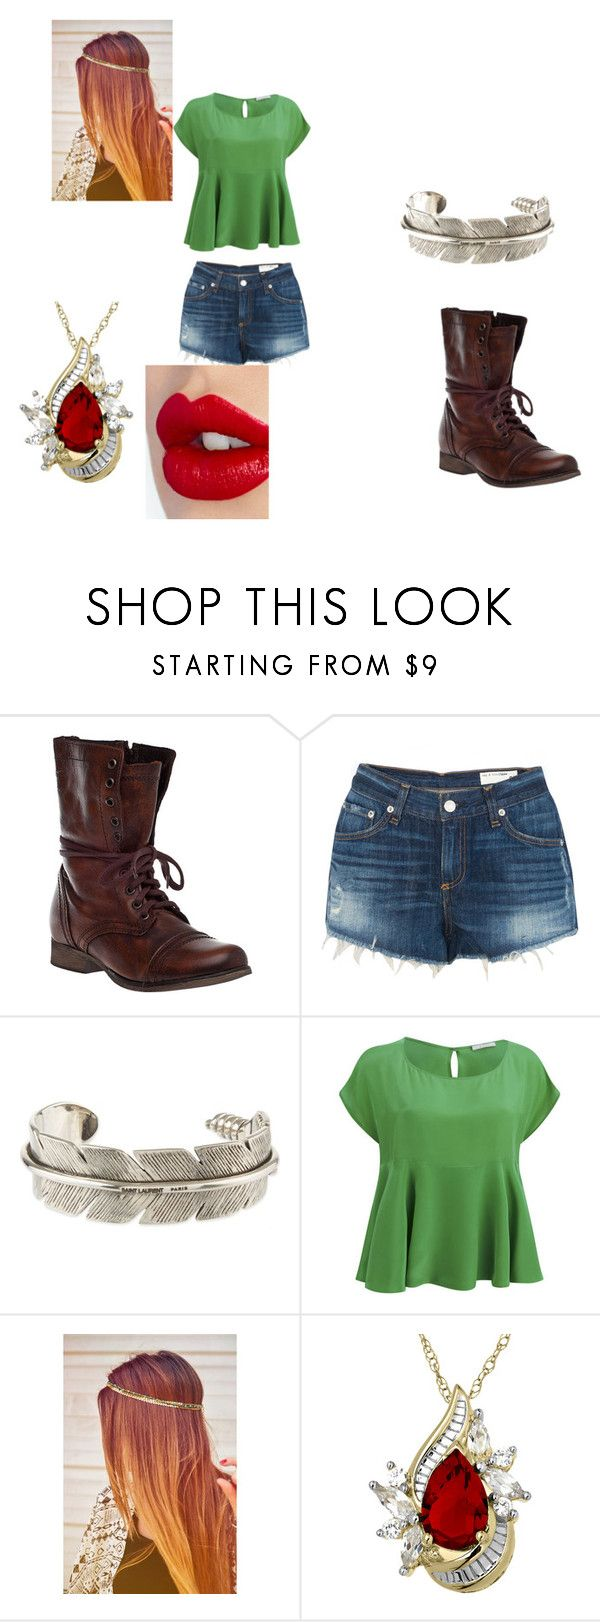 """when you meet Slenderman"" by amythekiller on Polyvore featuring interior, interiors, interior design, home, home decor, interior decorating, Steve Madden, rag & bone, Yves Saint Laurent and D.Efect"